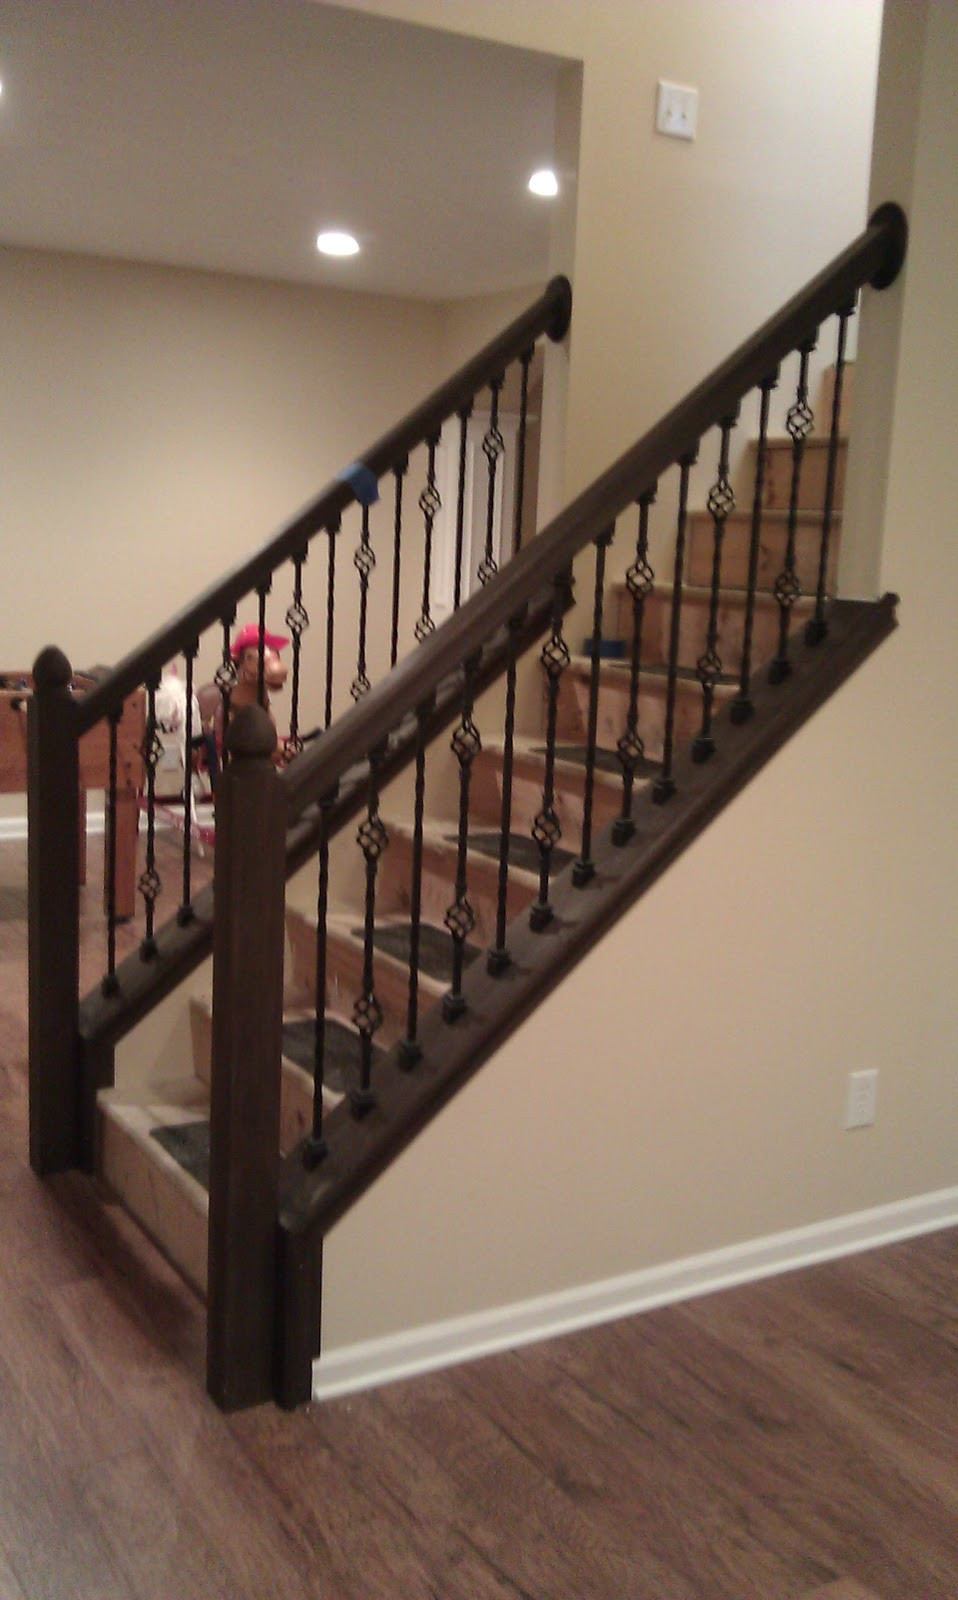 Best ideas about Indoor Stair Railings . Save or Pin The Latest Interior Design New Modern Stair Railing 2012 Now.